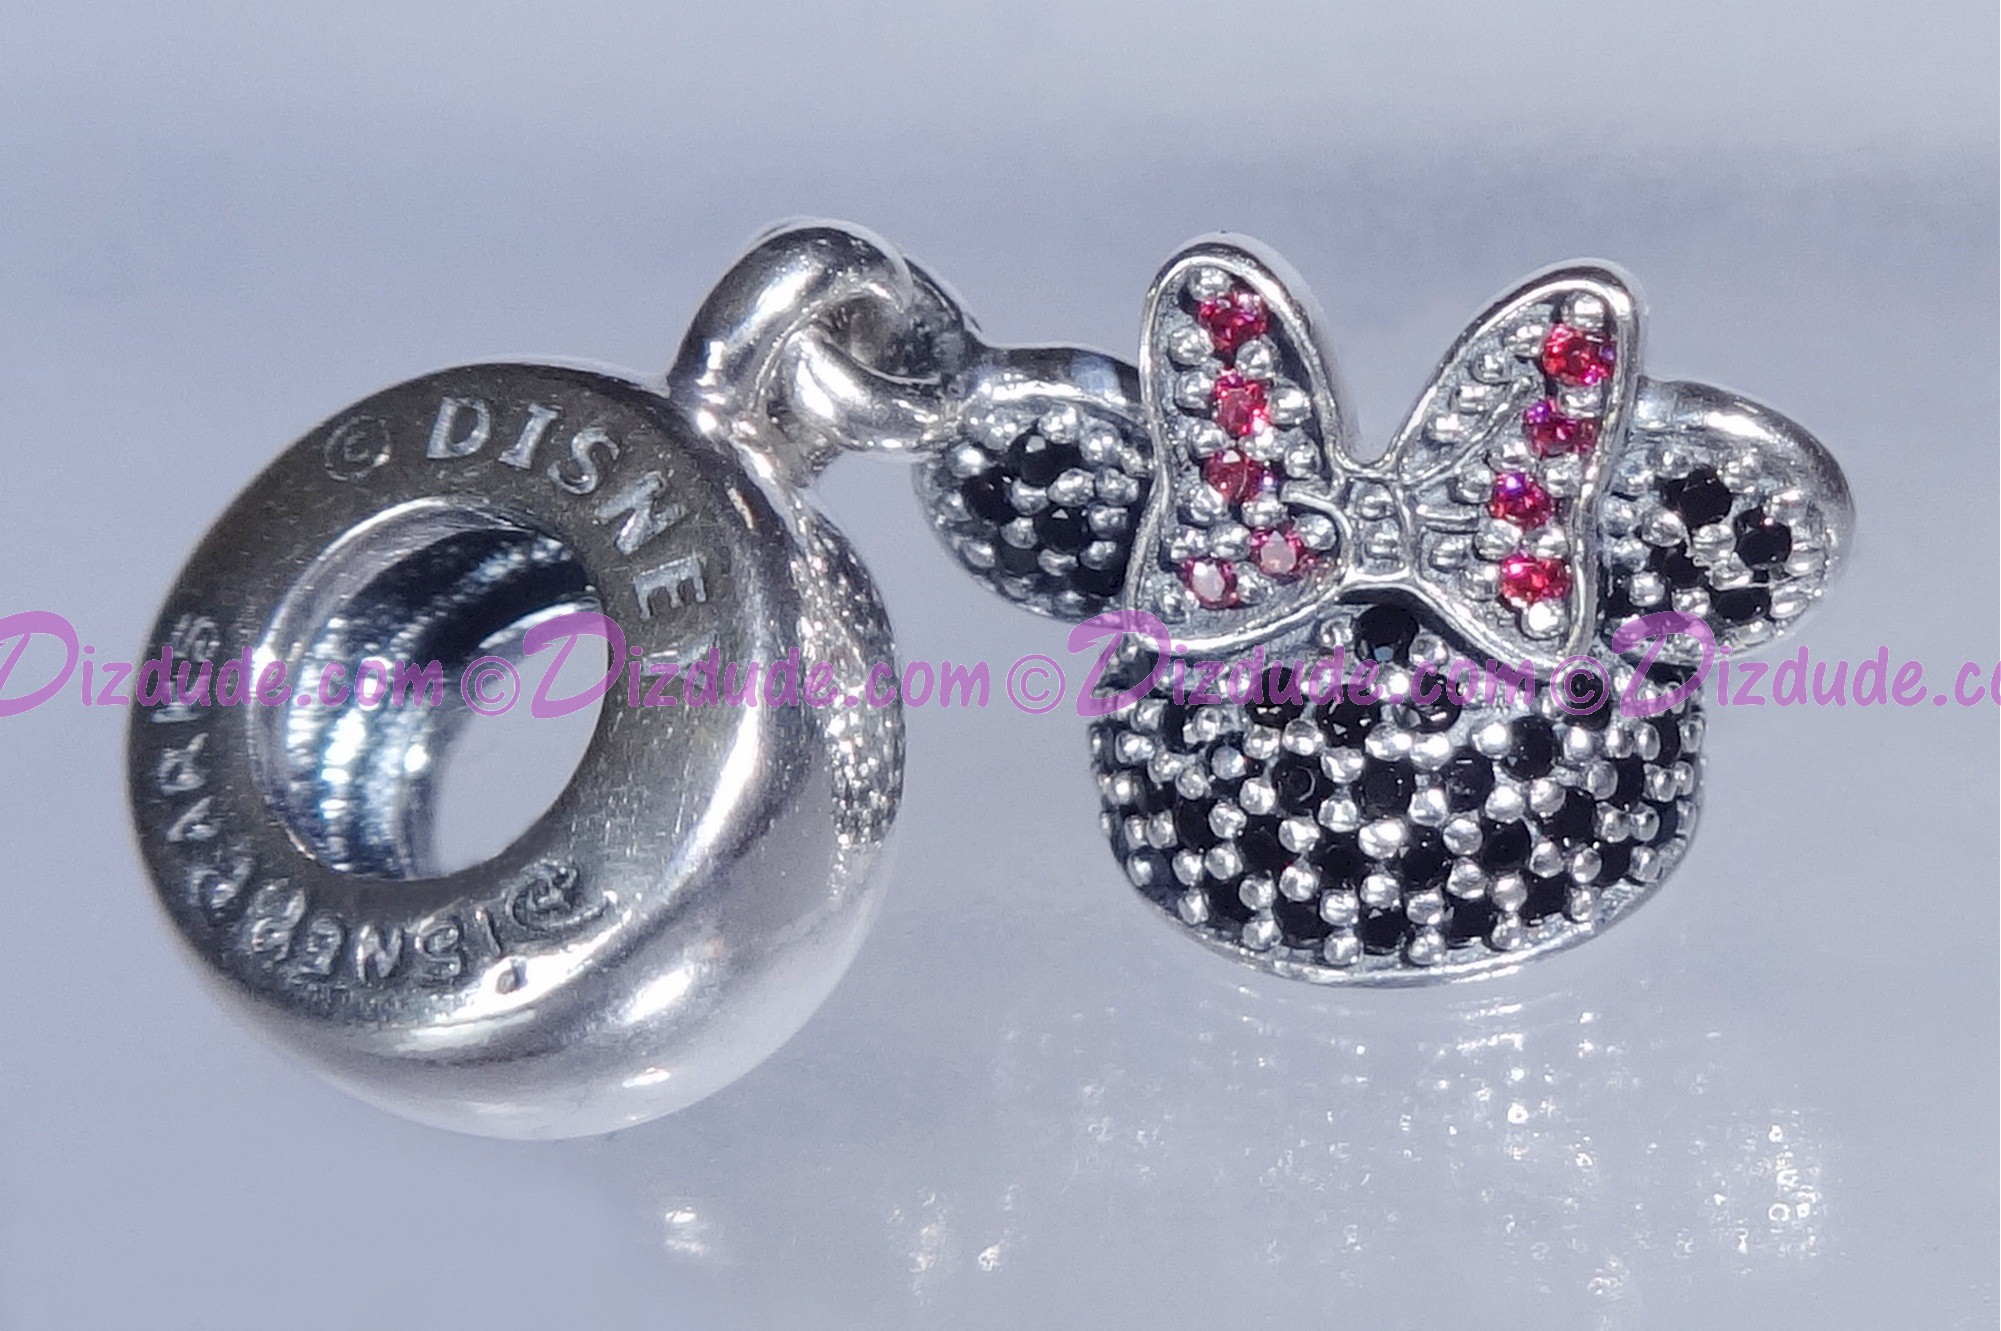 "(SOLD OUT) Disney Pandora ""Minnie Sparkling Ear Hat"" Sterling Silver Charm with Cubic Zirconias - Disney World Parks Exclusive"